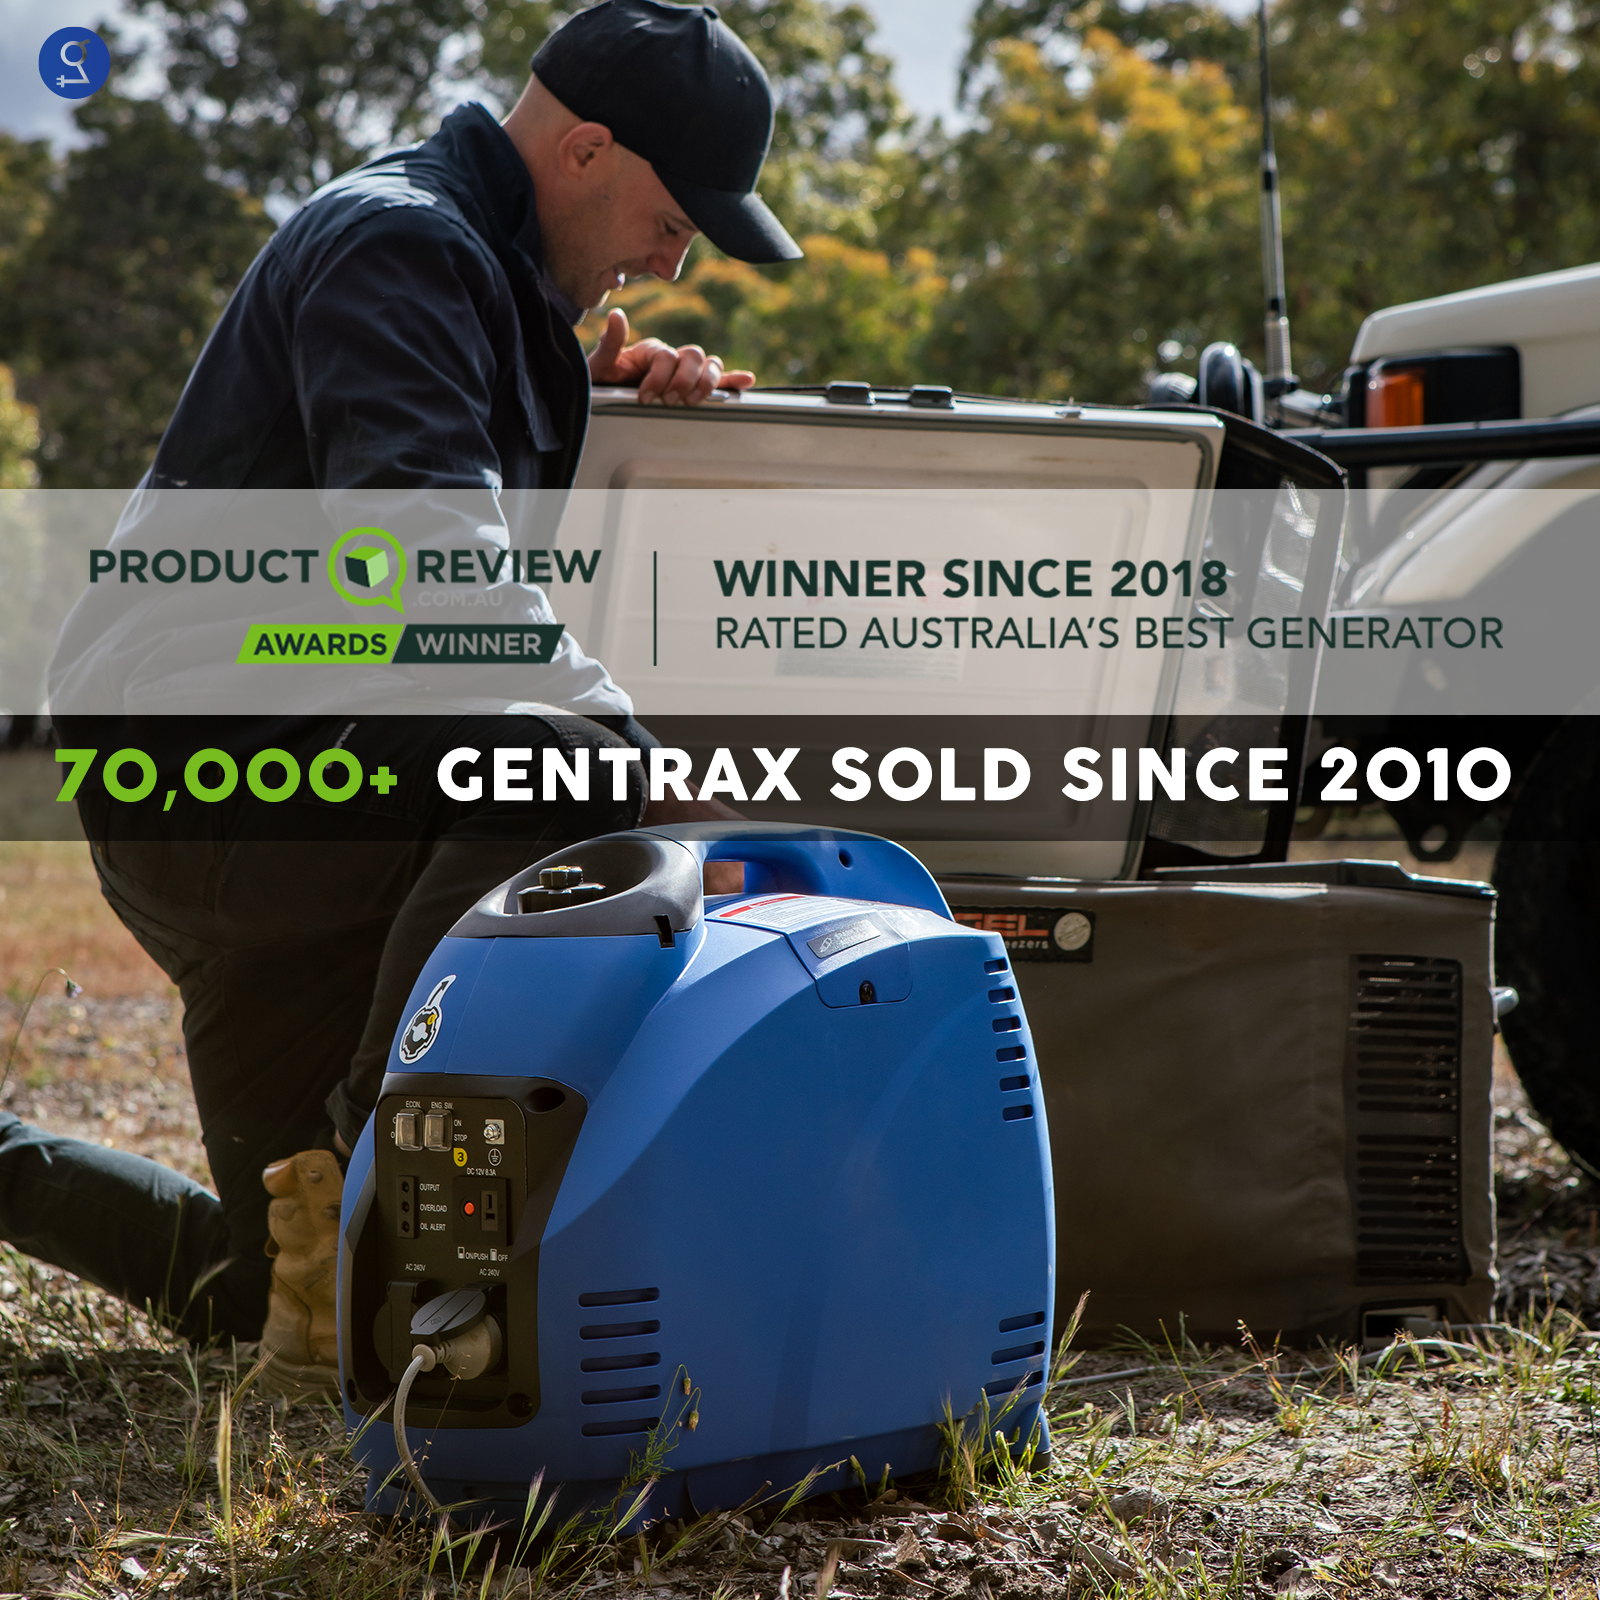 GenTrax Inverter Generator 3.5KW Max 3KW Rated Pure Sine Portable Camping Petrol 3